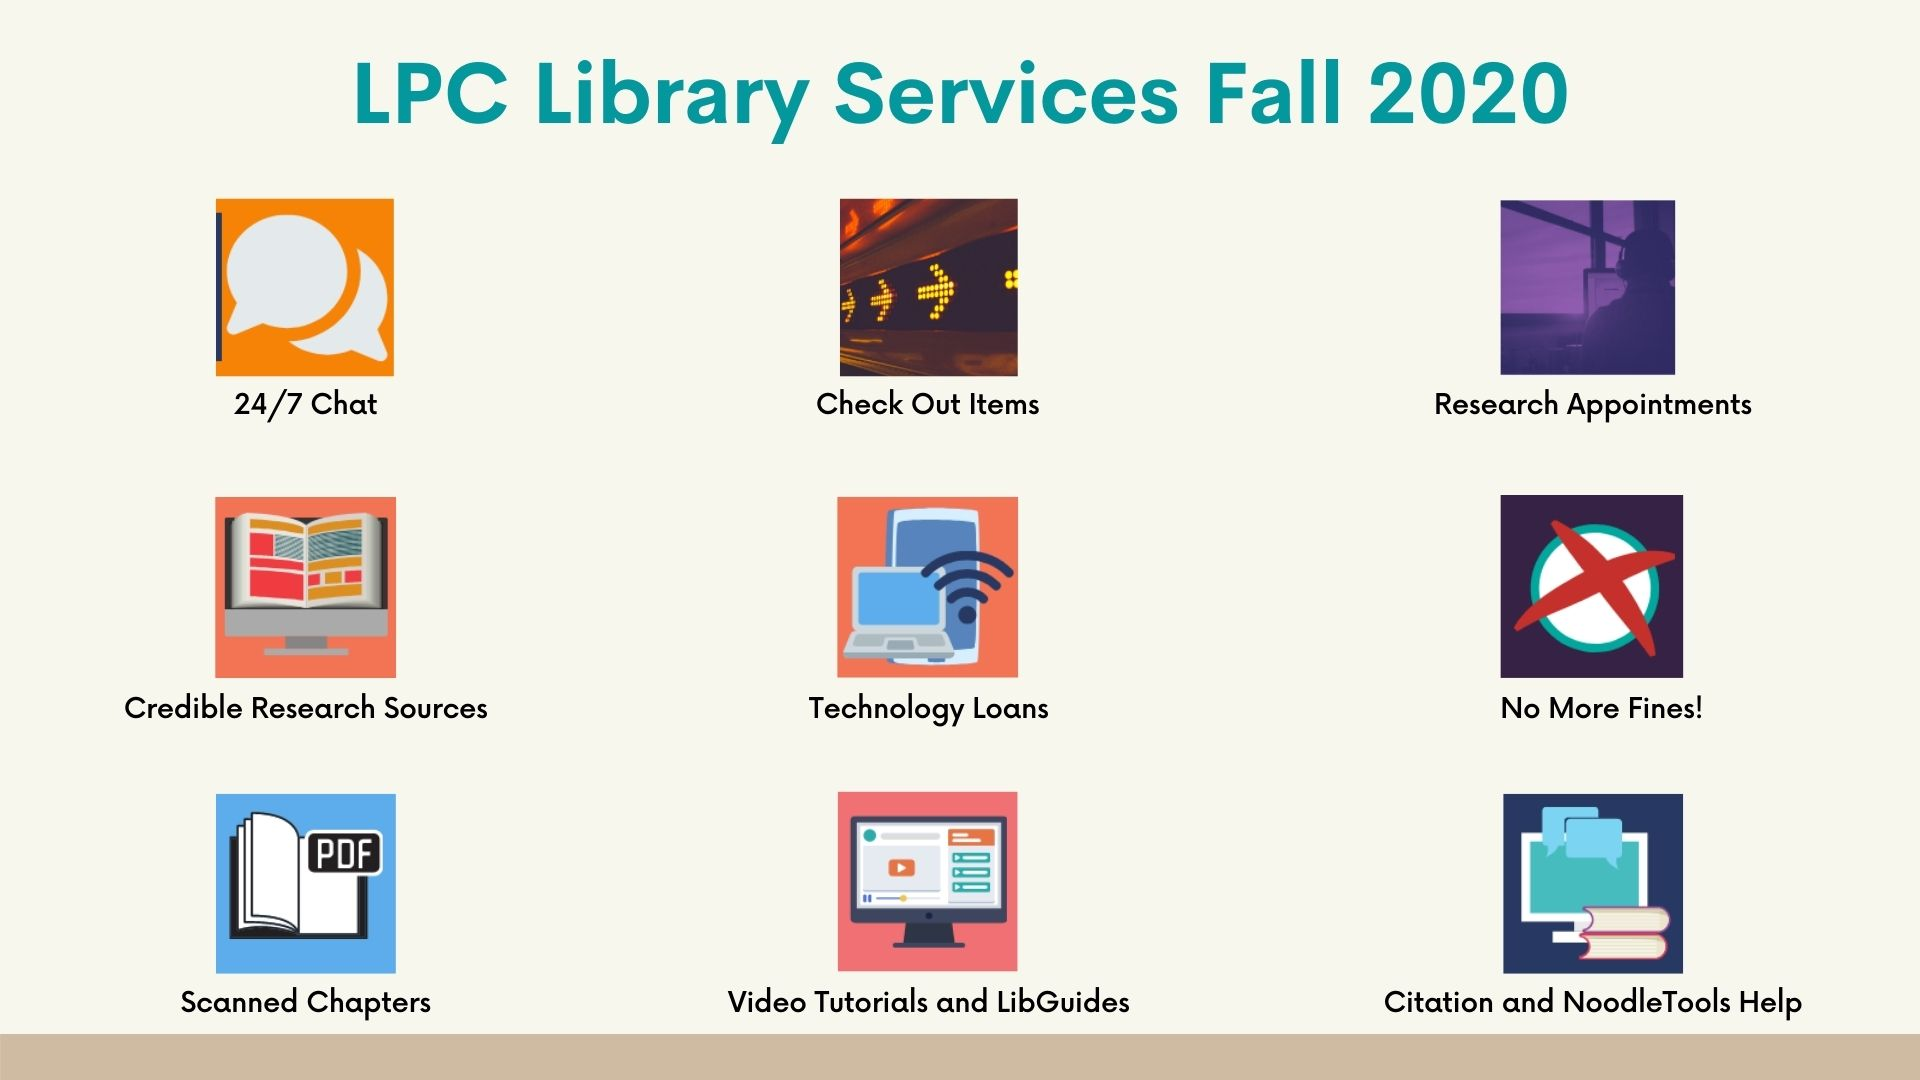 LPC Library Services